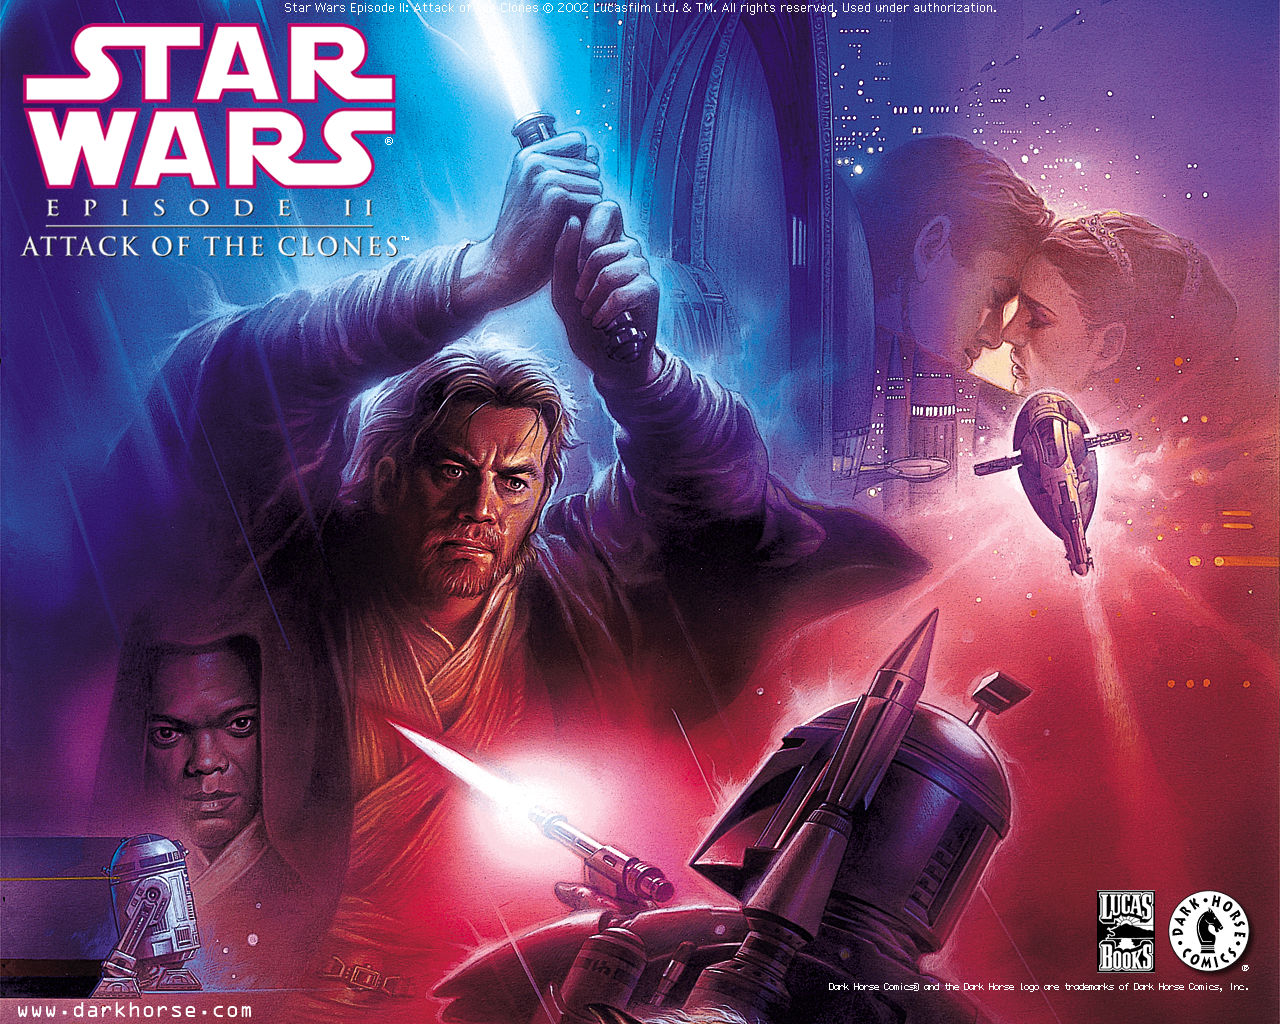 http://4.bp.blogspot.com/-DHDVaNMK8R4/TcluVOEqdSI/AAAAAAAABVA/1FBML4kw5s8/s1600/Attack_of_the_Clones_Cover_Art.jpg